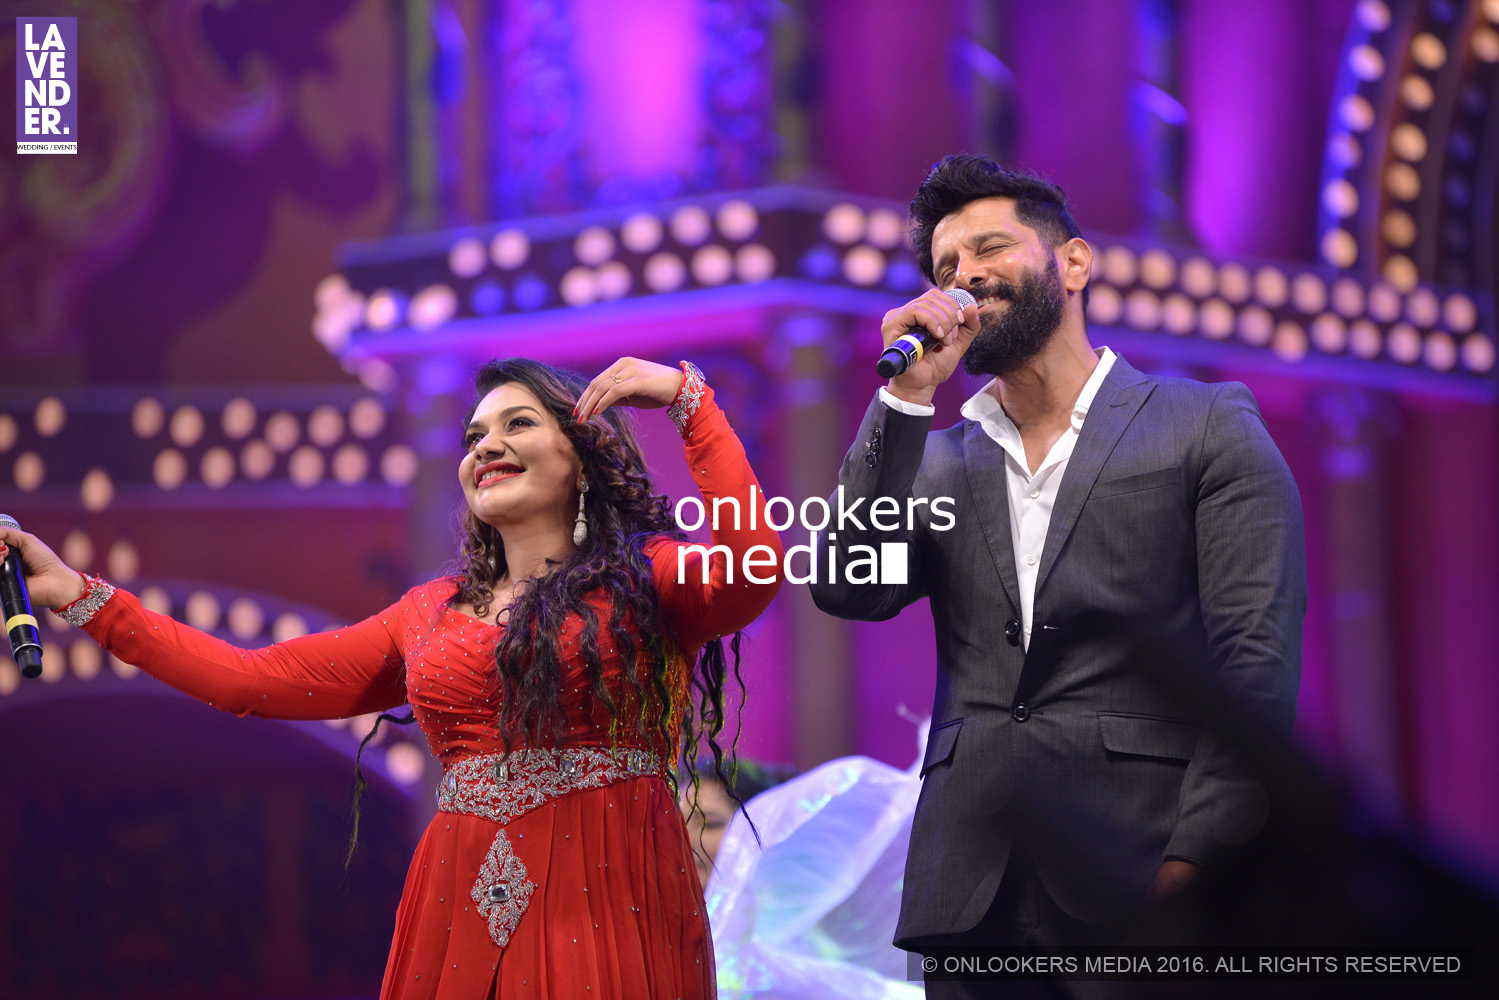 http://onlookersmedia.in/wp-content/uploads/2016/02/Vikram-at-Asianet-Film-Awards-2016-27.jpg